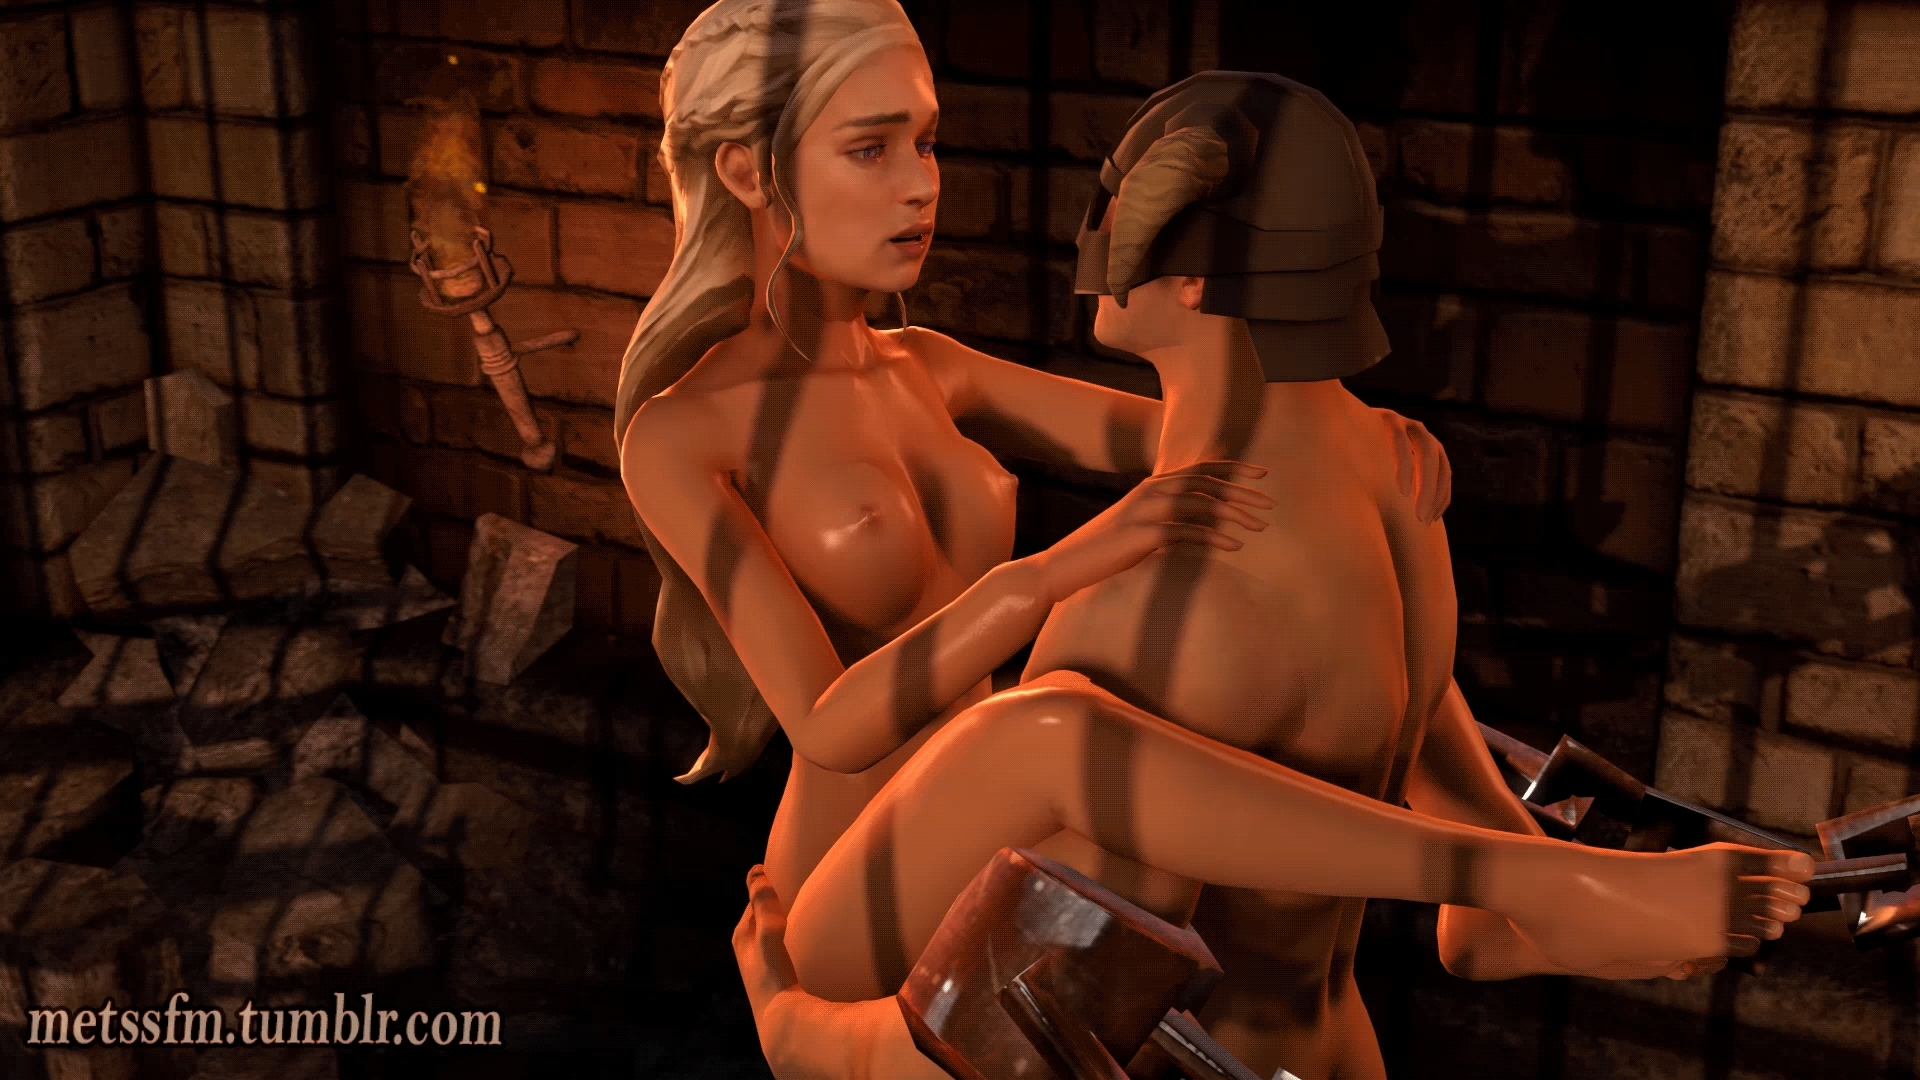 Game of thrones rule 34 hentai erotica photos